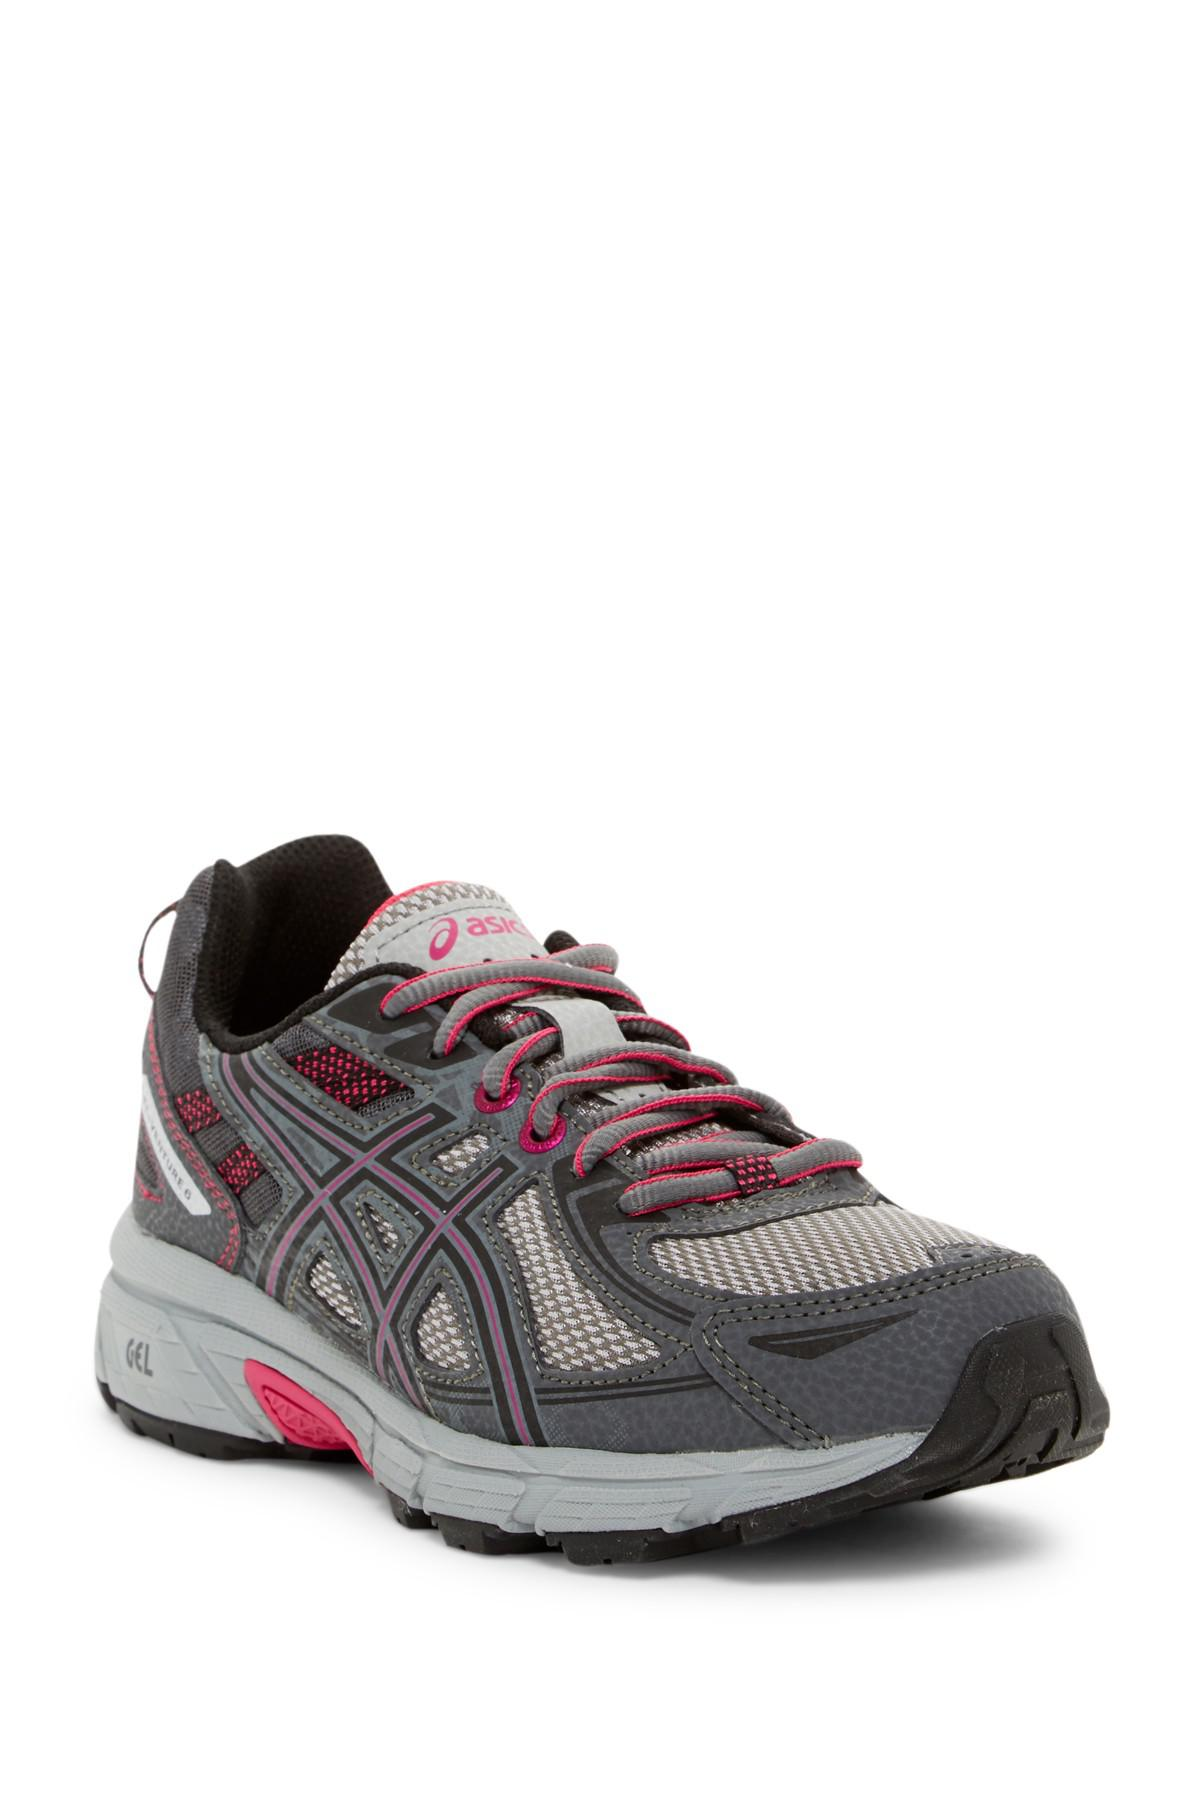 Asics Men S Gel Venture  Running Shoe Carbon